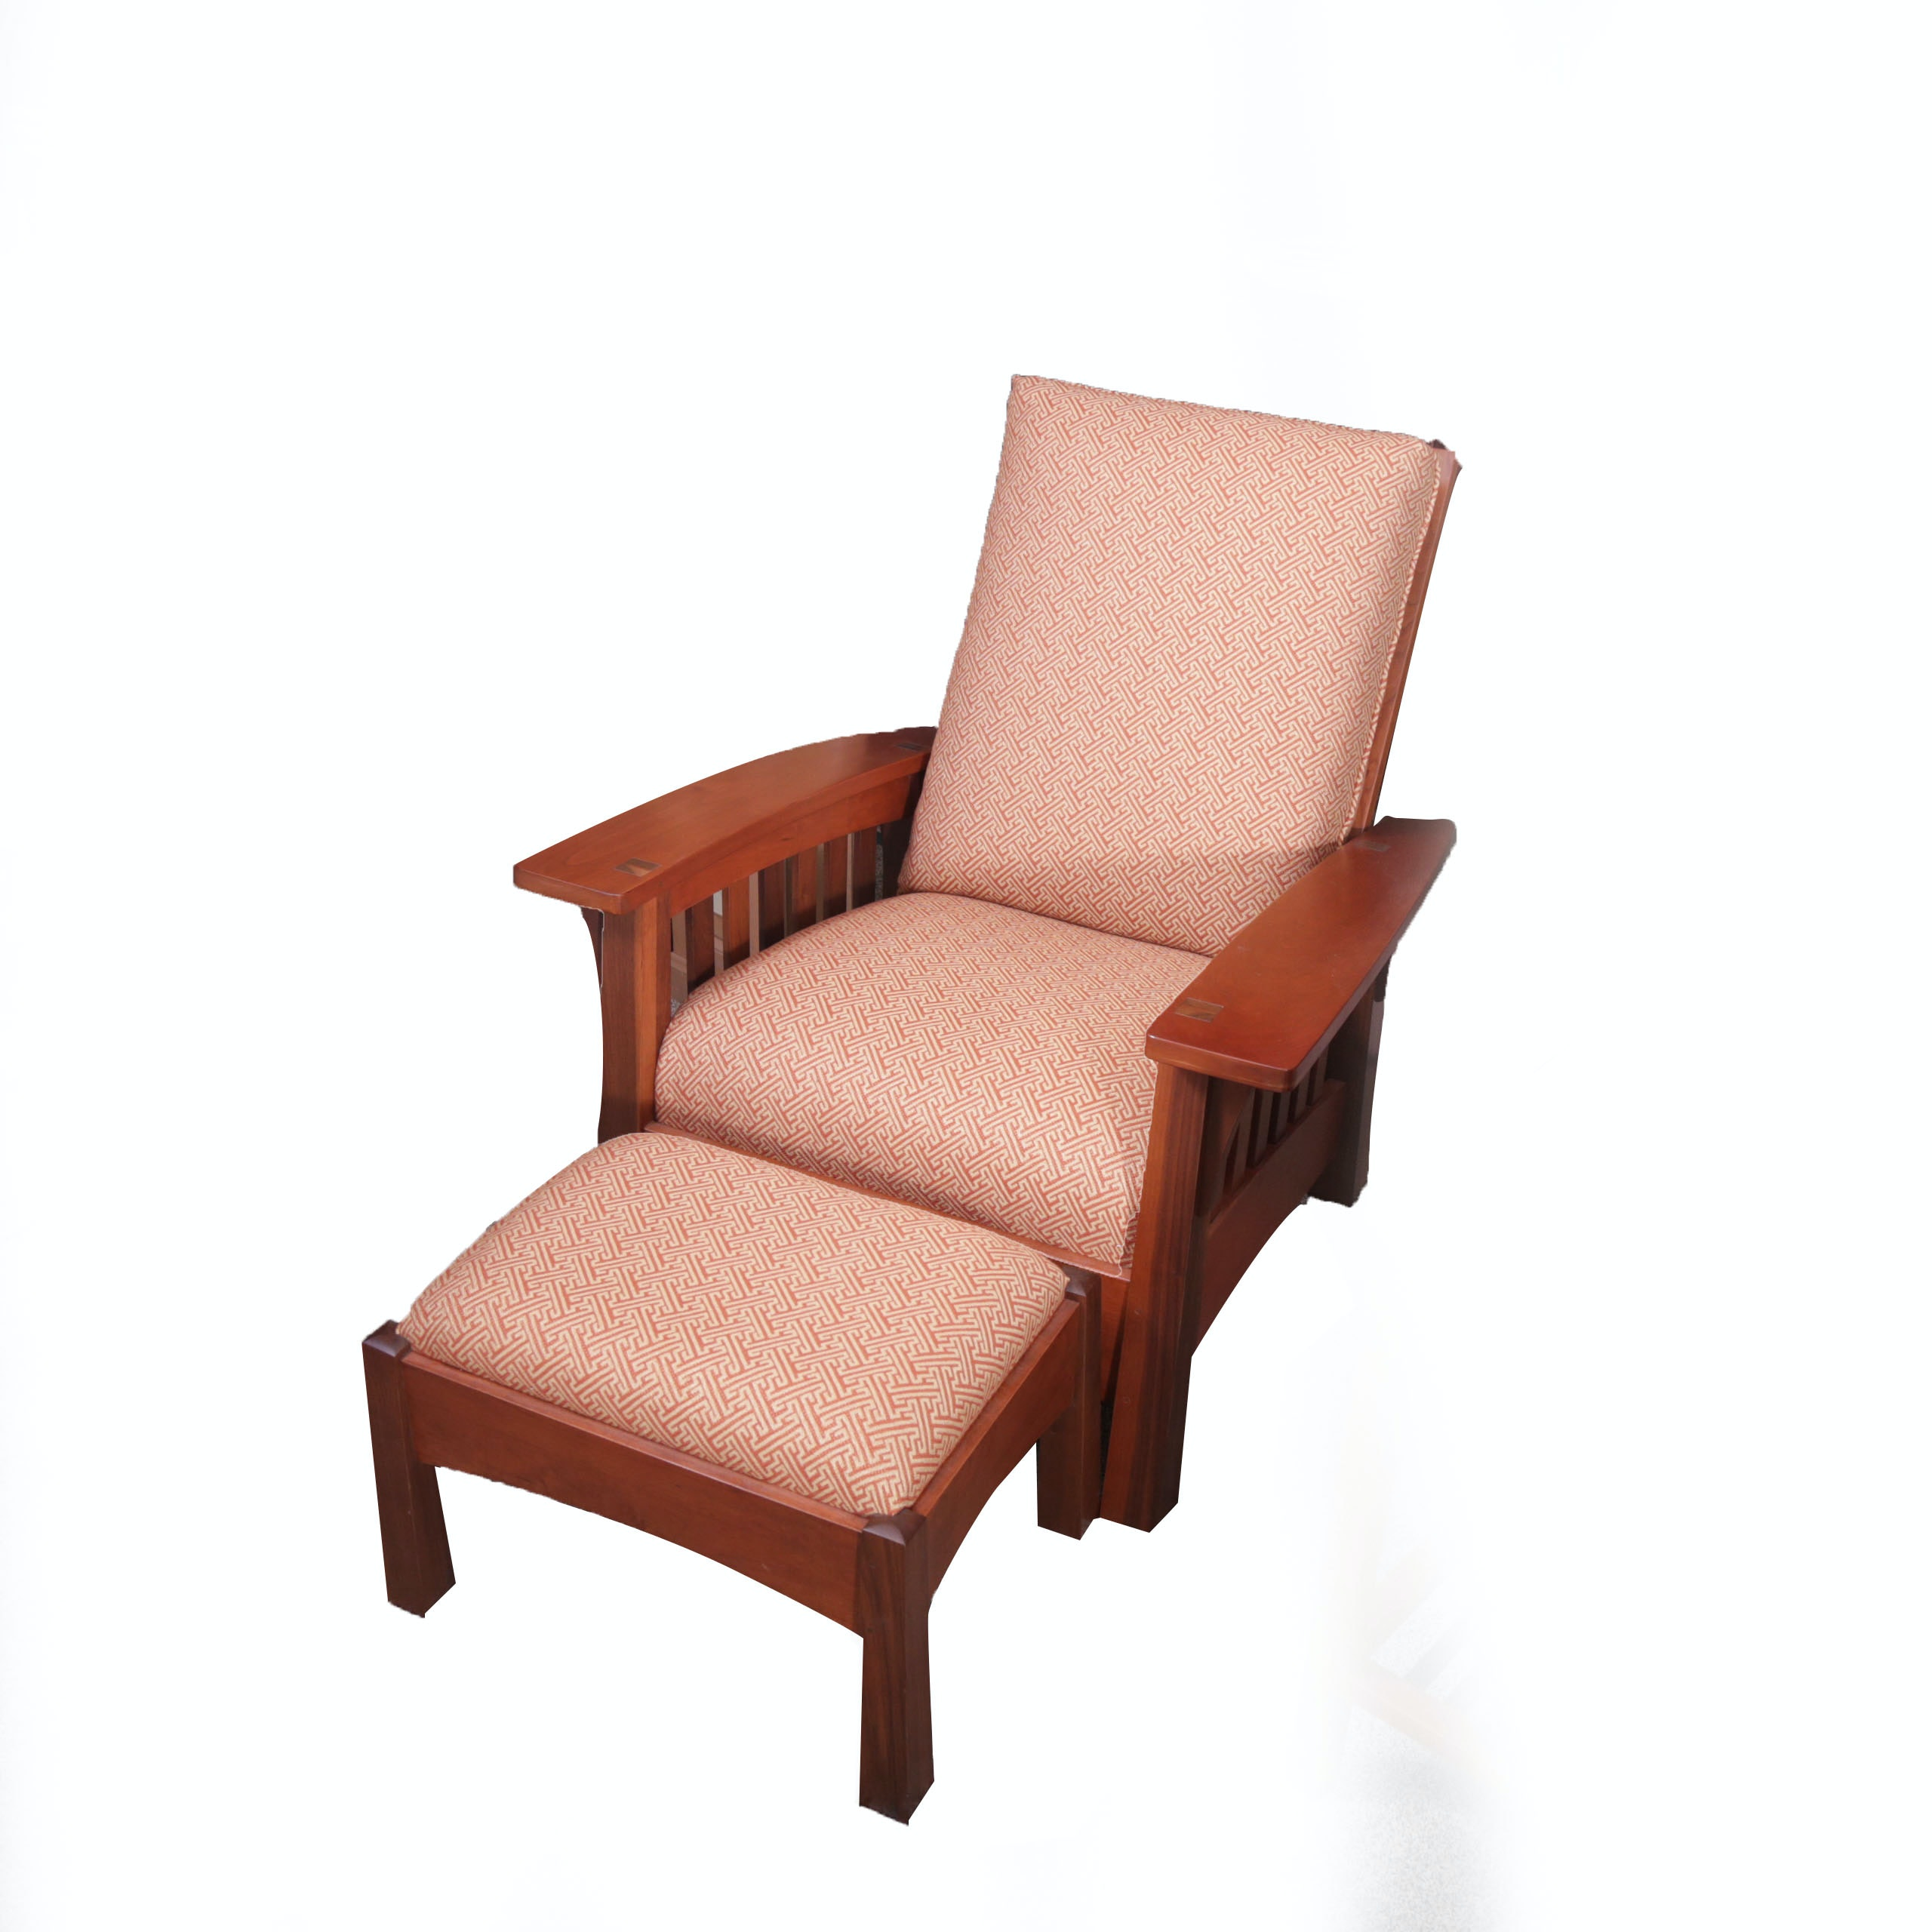 Stickley Furniture Bow Arm Morris Chair with Ottoman